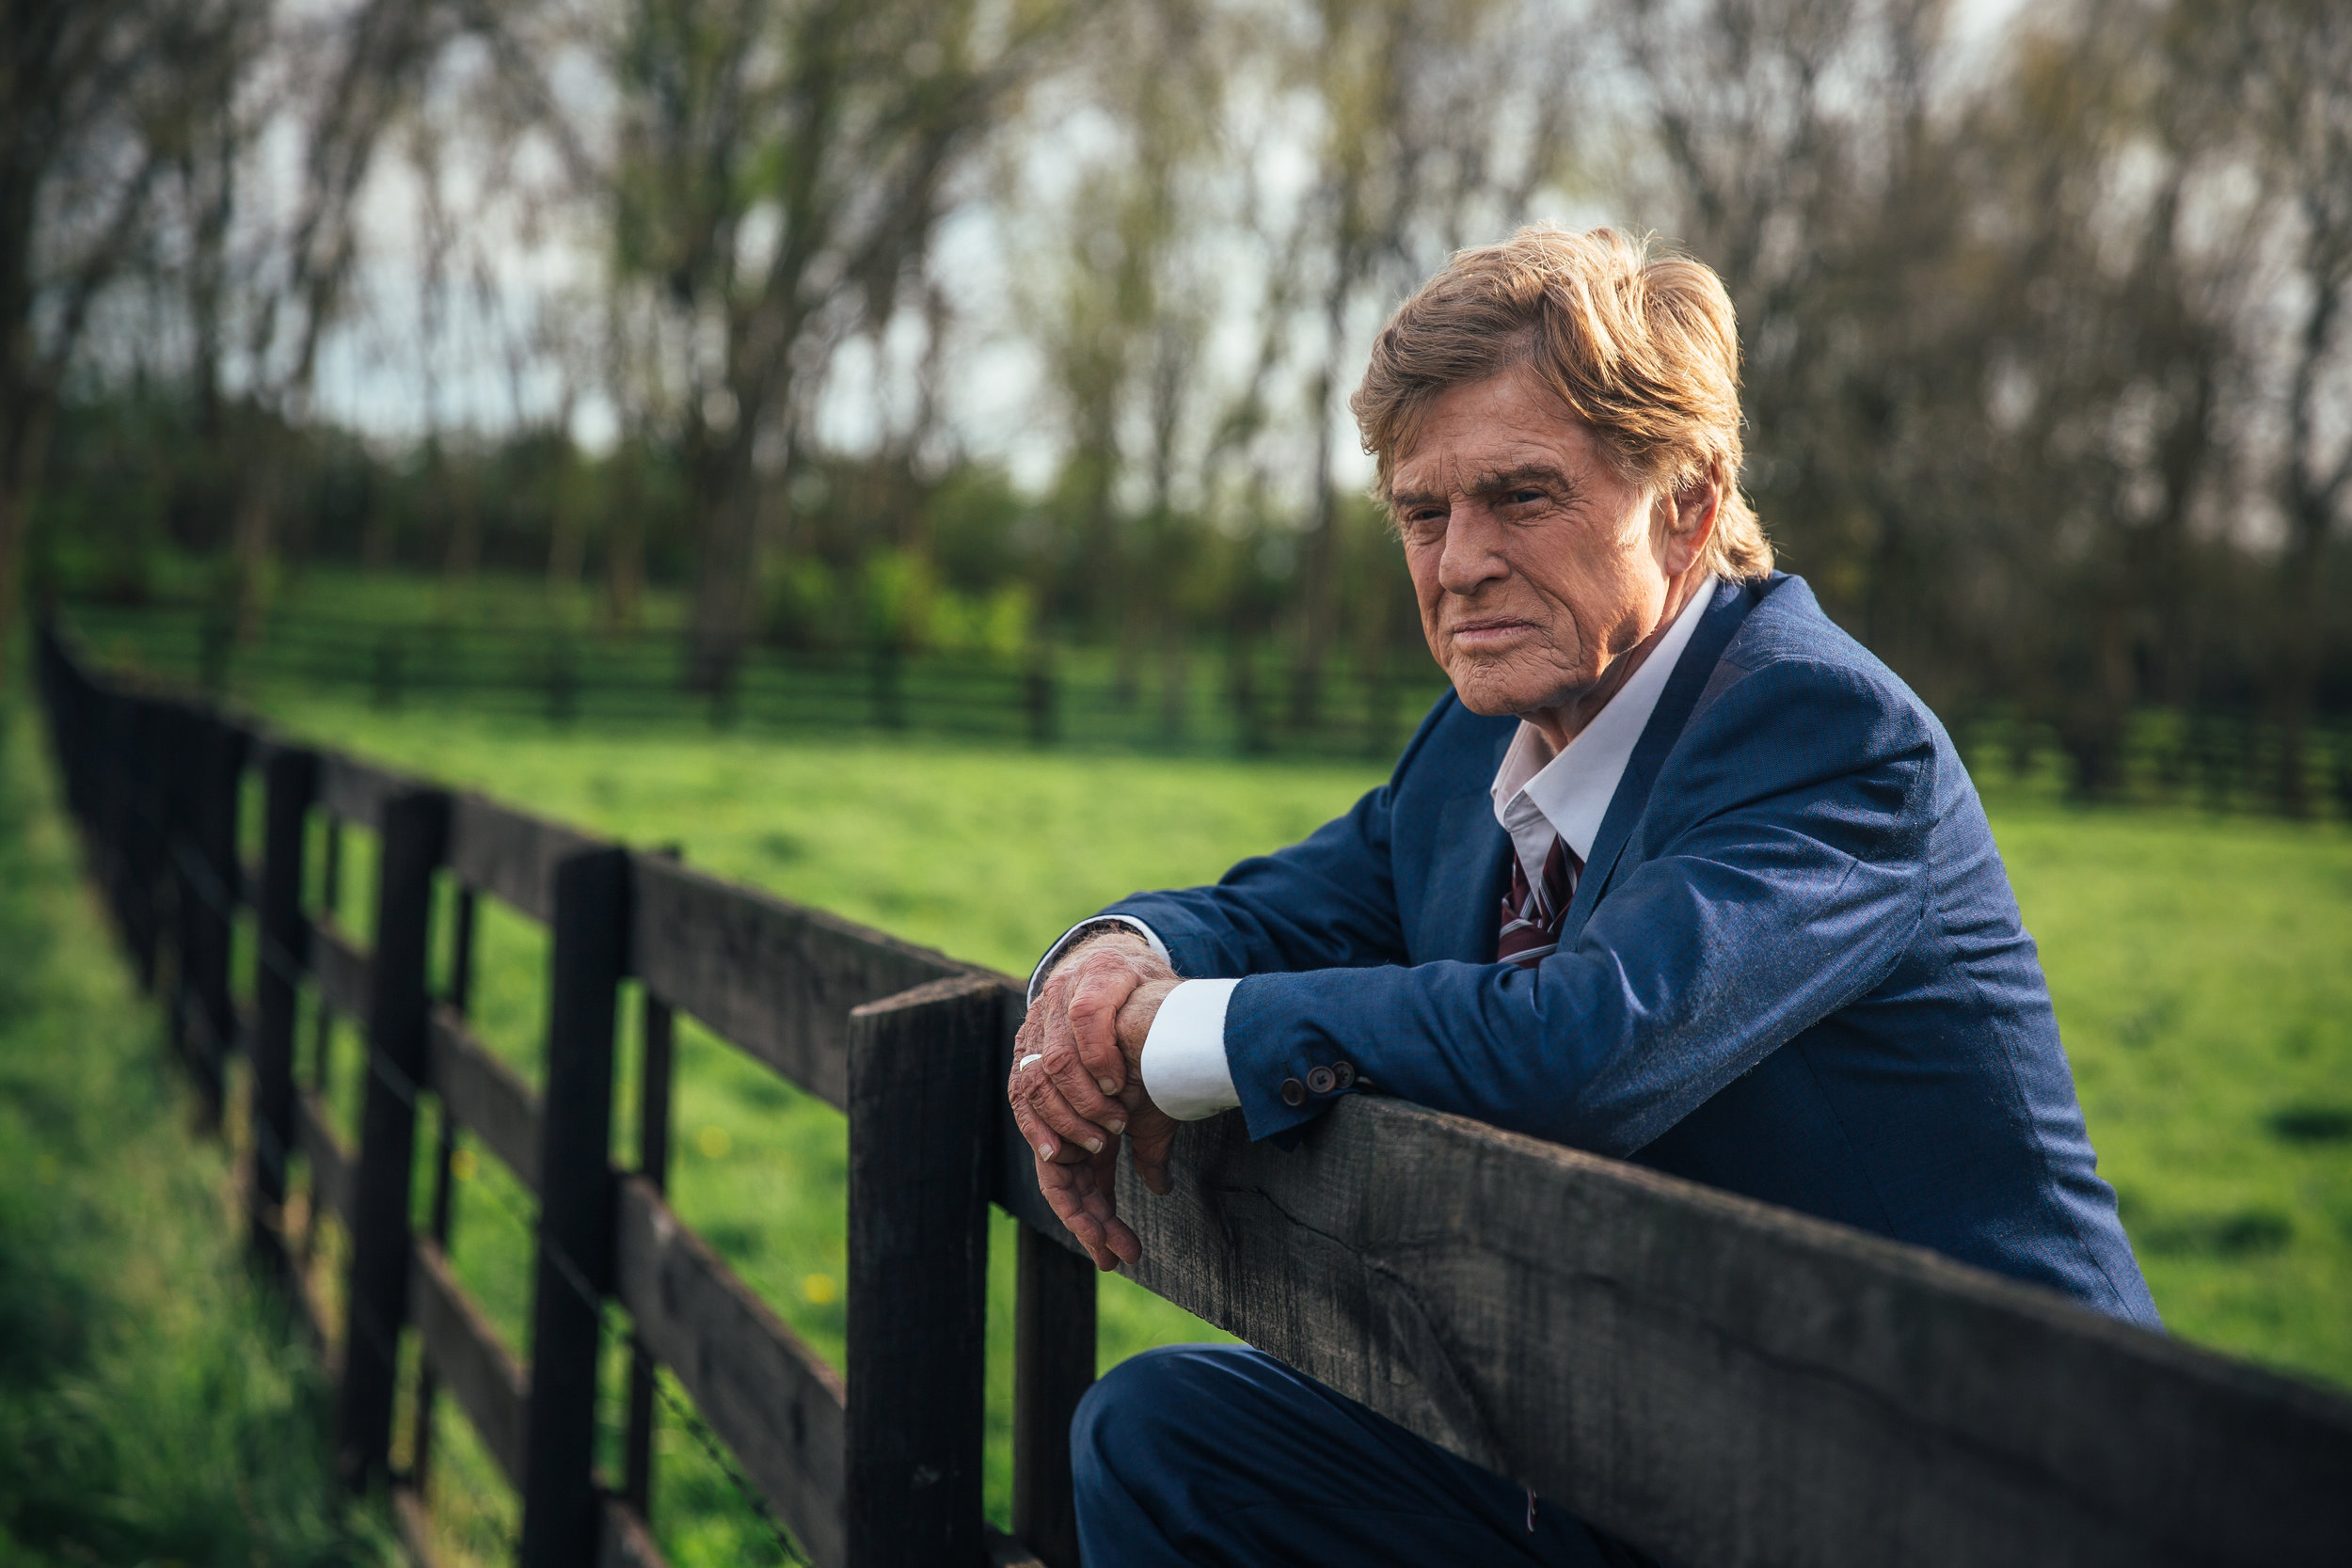 """Robert Redford plays a career bank robber in """"The Old Man and the Gun."""" (Photo by Eric Zachanowich / courtesy Fox Searchlight Pictures)"""